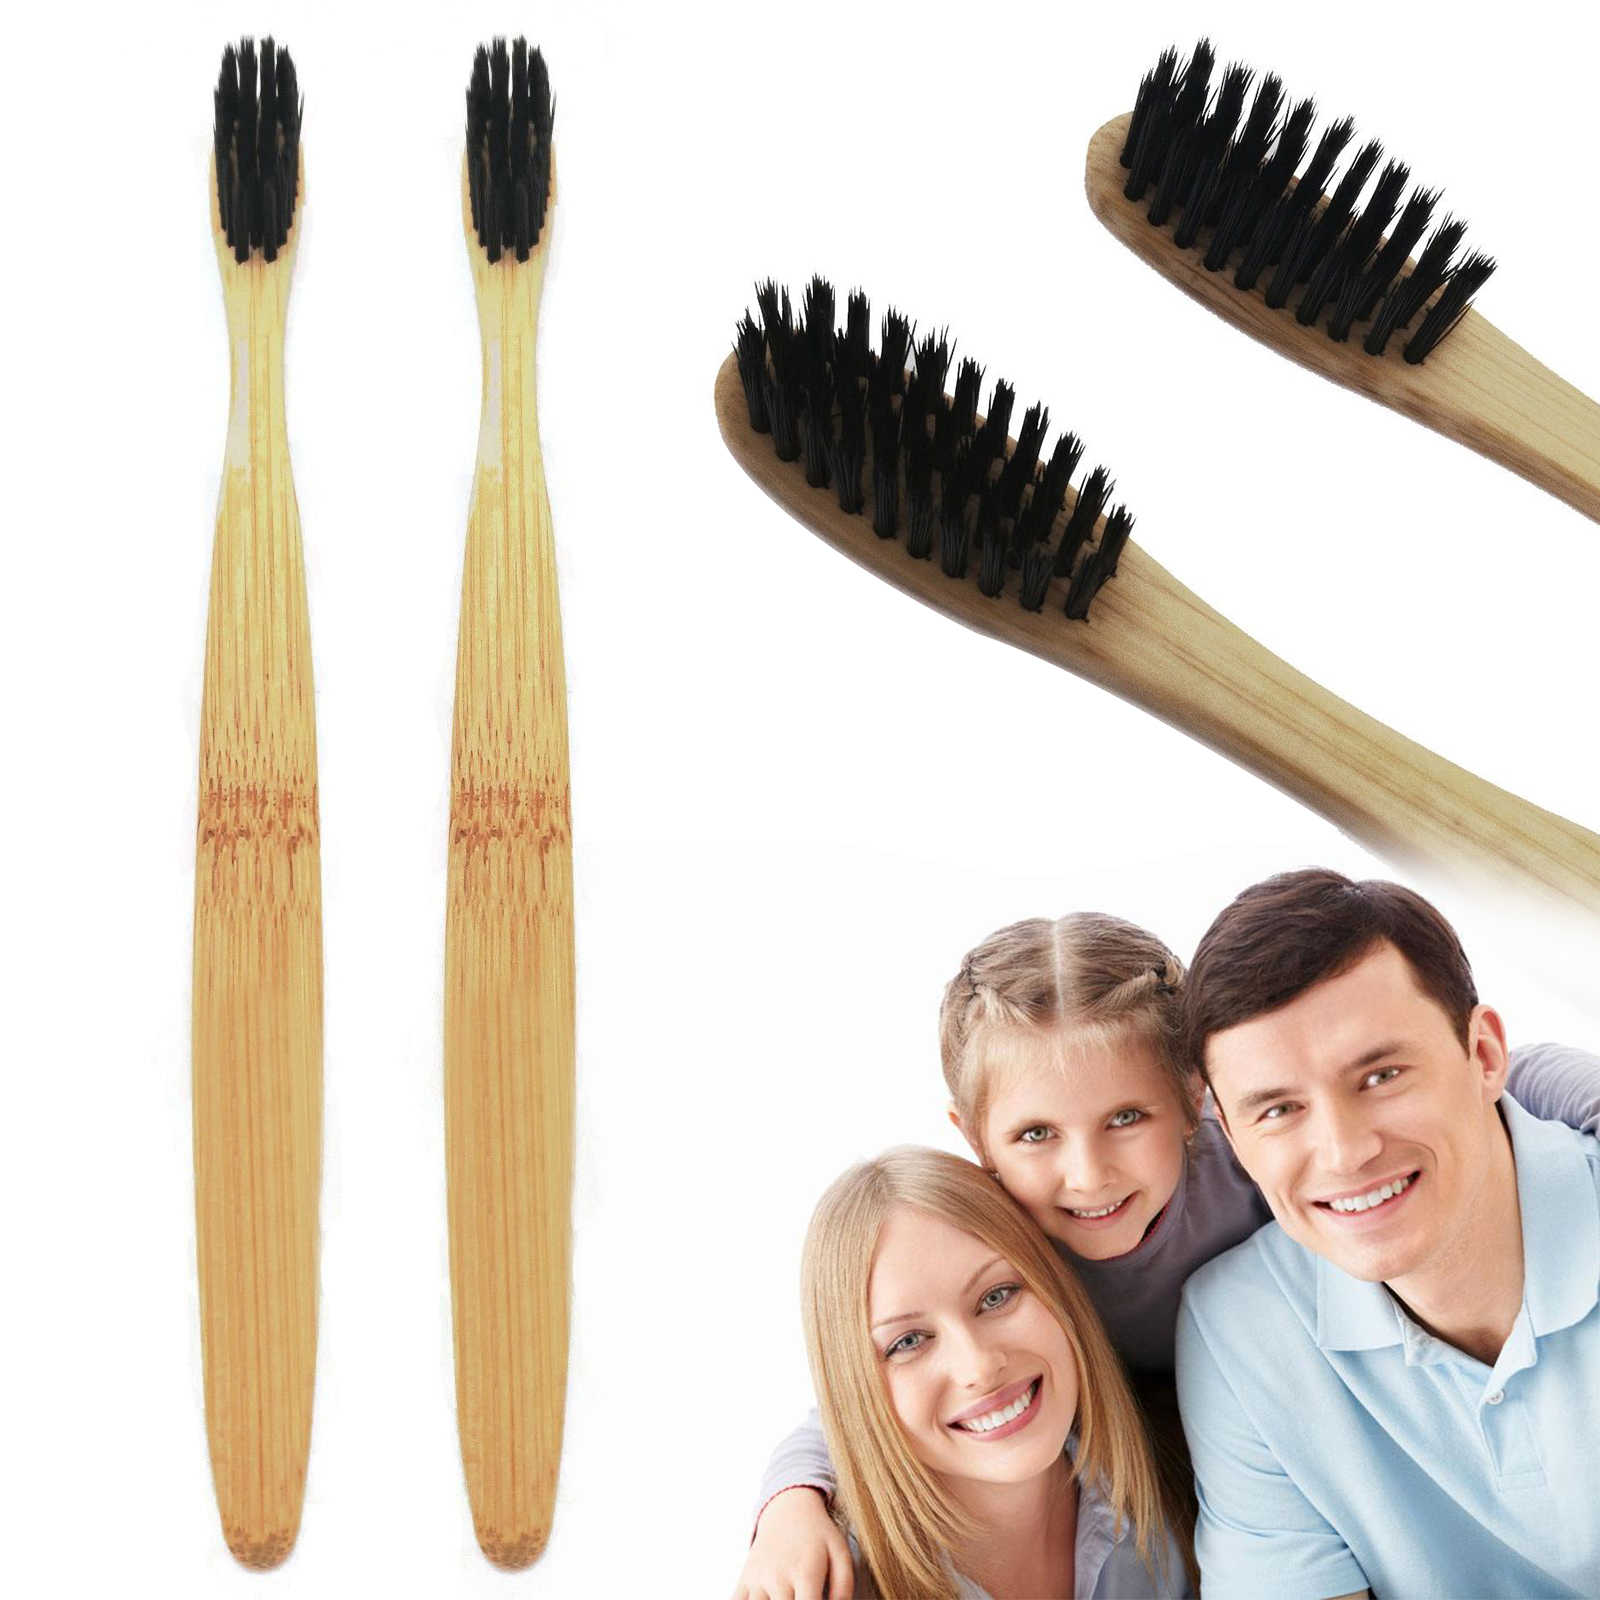 New Natural Bamboo Toothbrush Bamboo Charcoal Toothbrush Low Carbon Bamboo Nylon Wood Handle Toothbrush 1 Pcs Brush